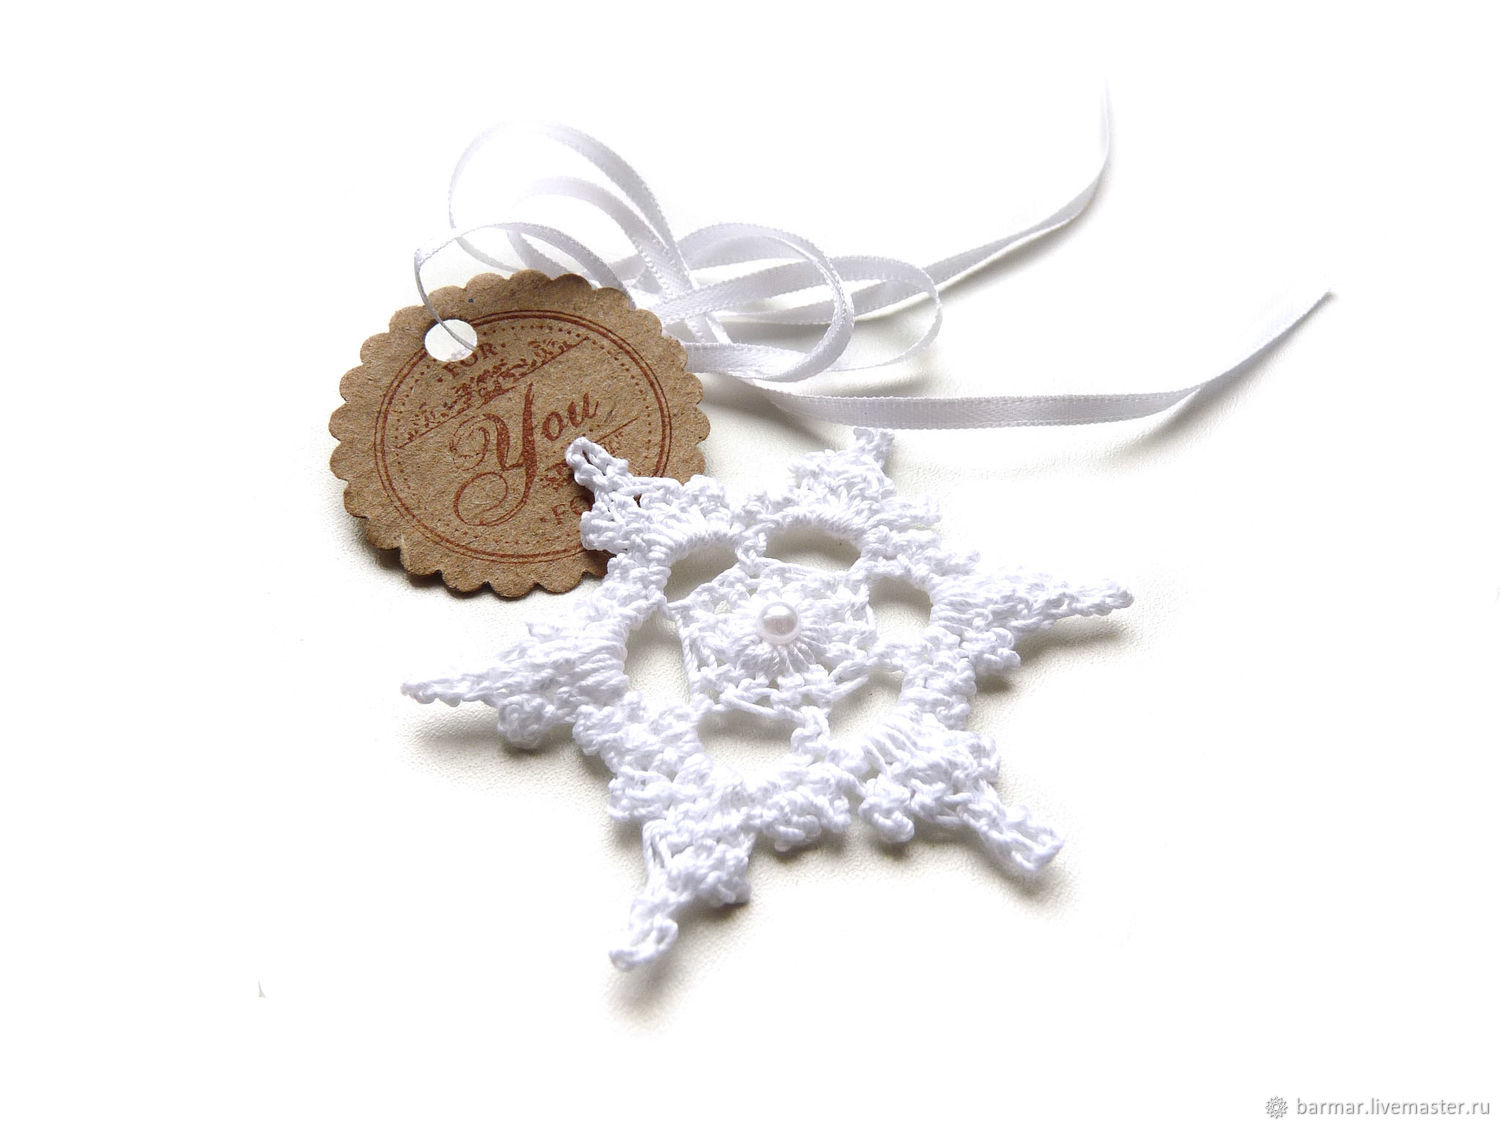 Snowflake 6,5 cm white knitted, Christmas decorations, Moscow,  Фото №1